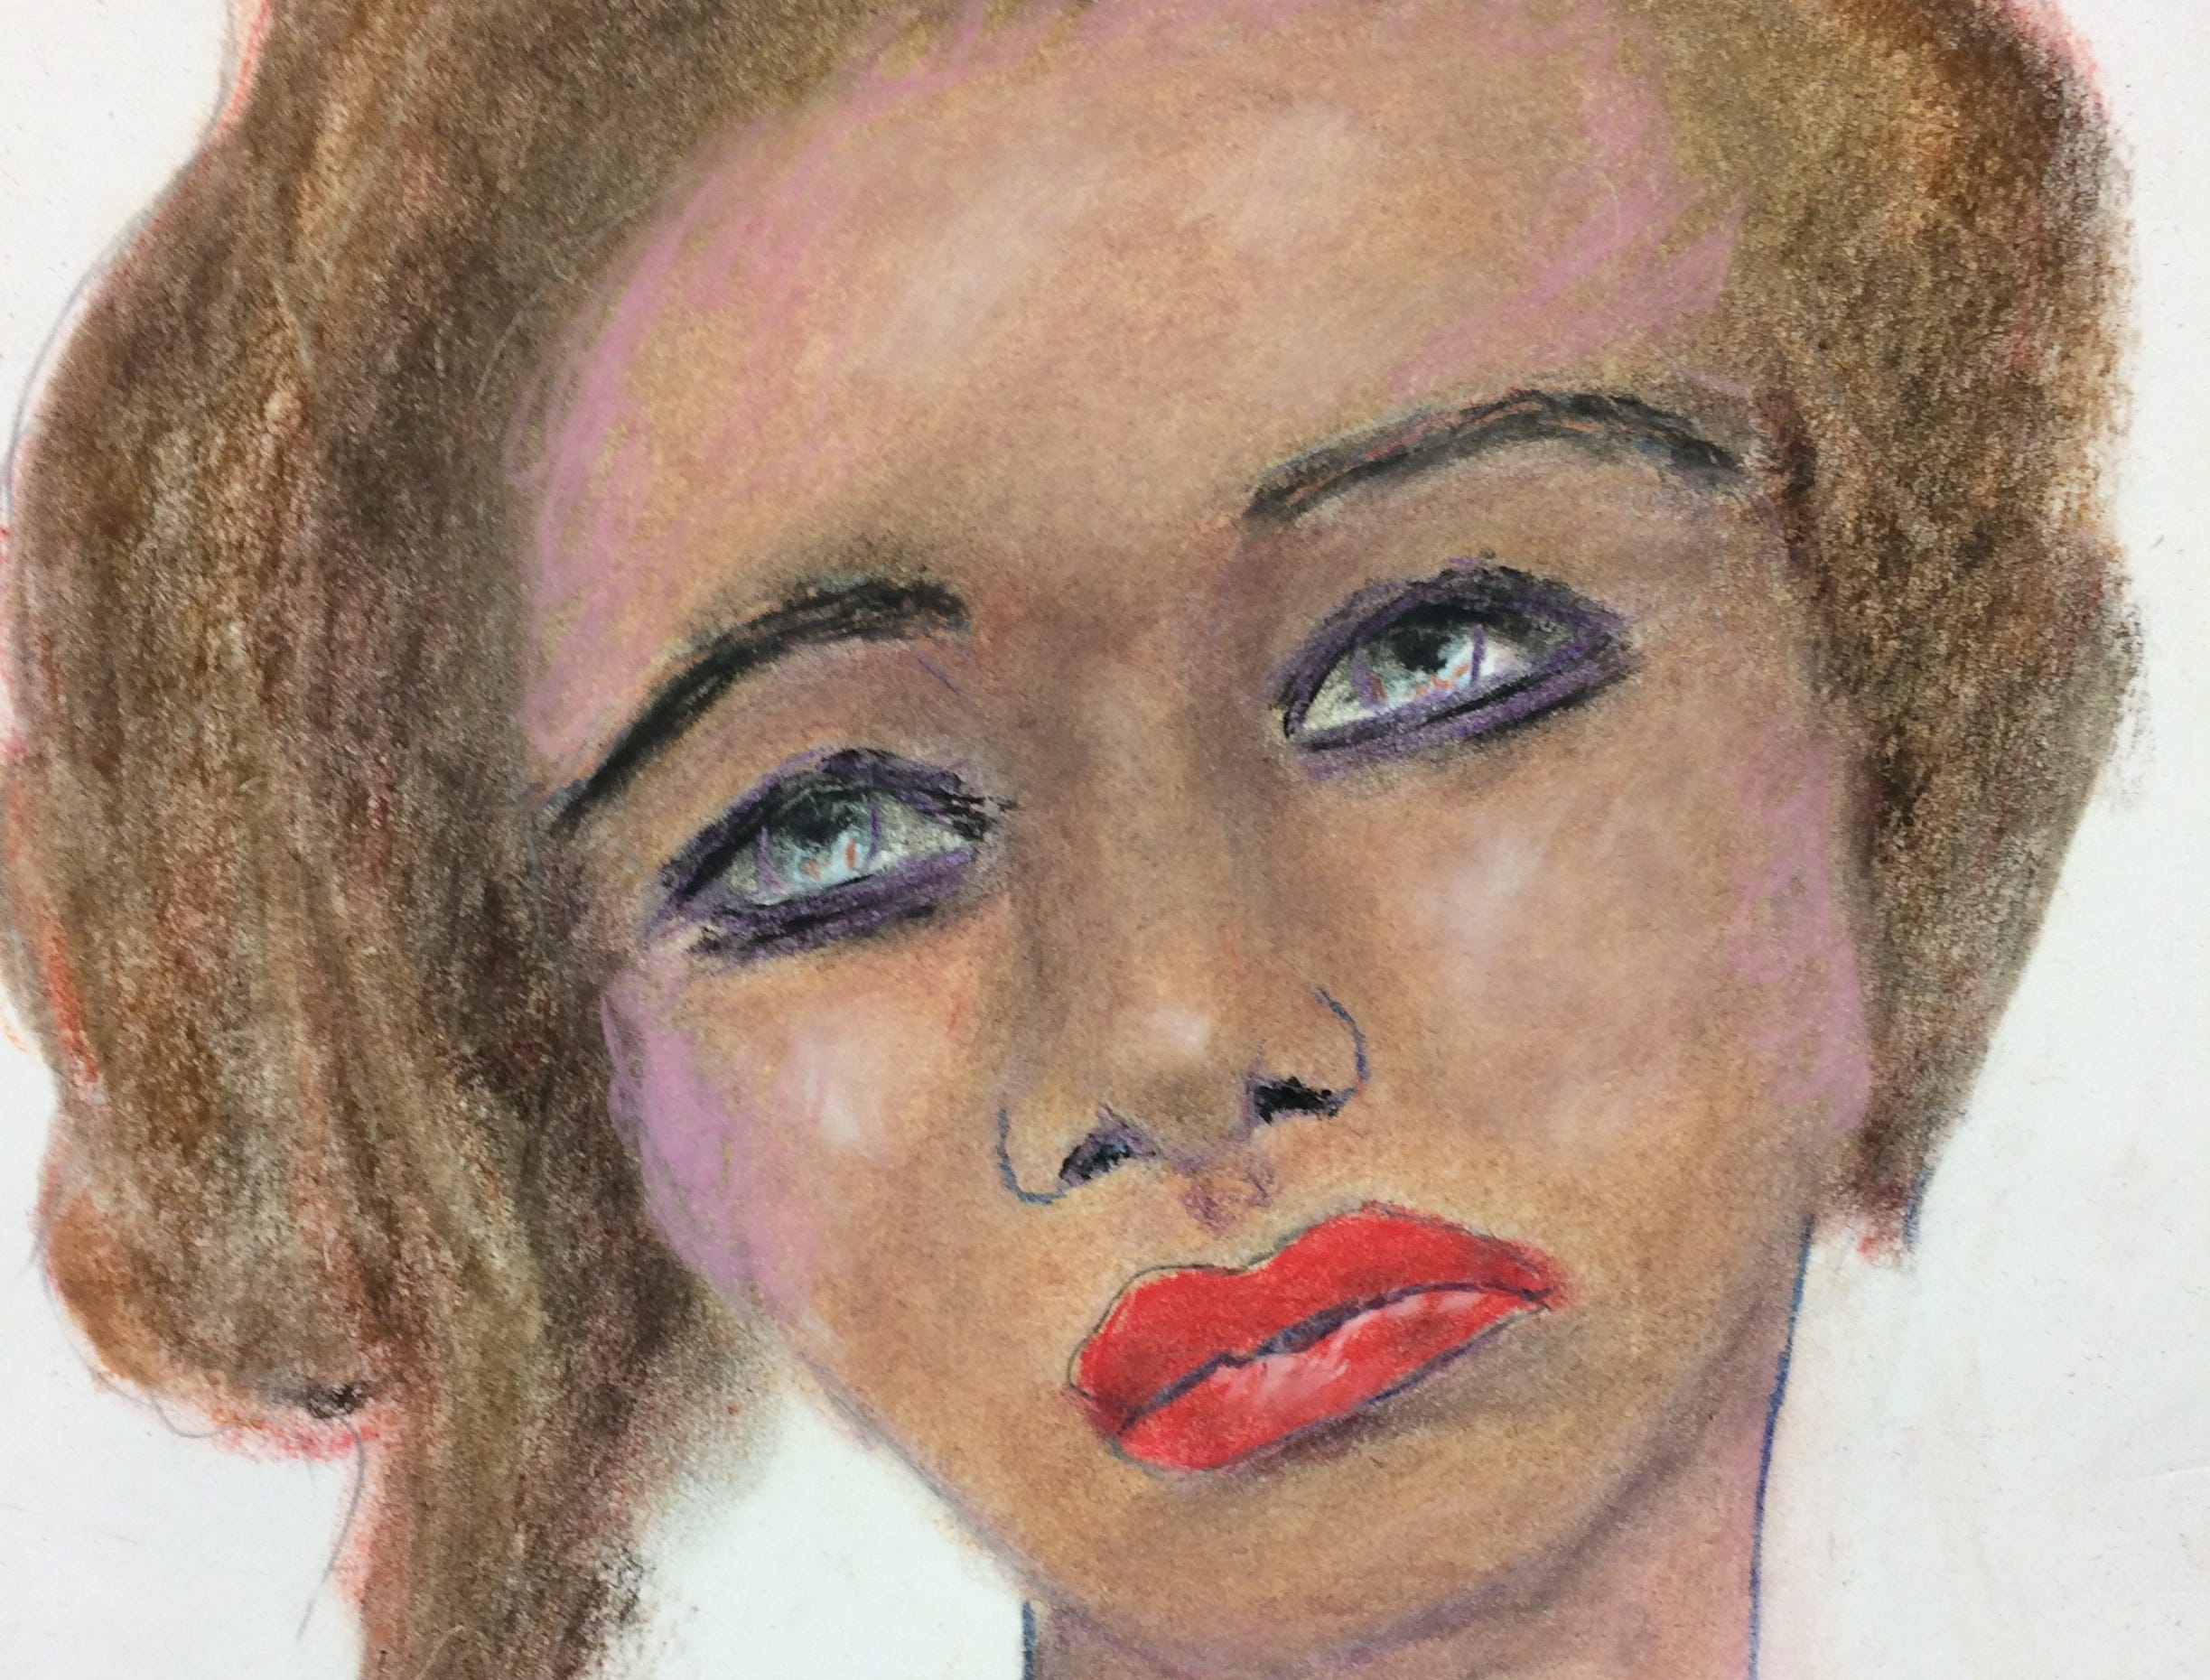 Serial killer Samuel Little drew this woman who he says he murdered in 1996 in Los Angeles, California. Little told authorities she was a white female between 23 and 25 years old.